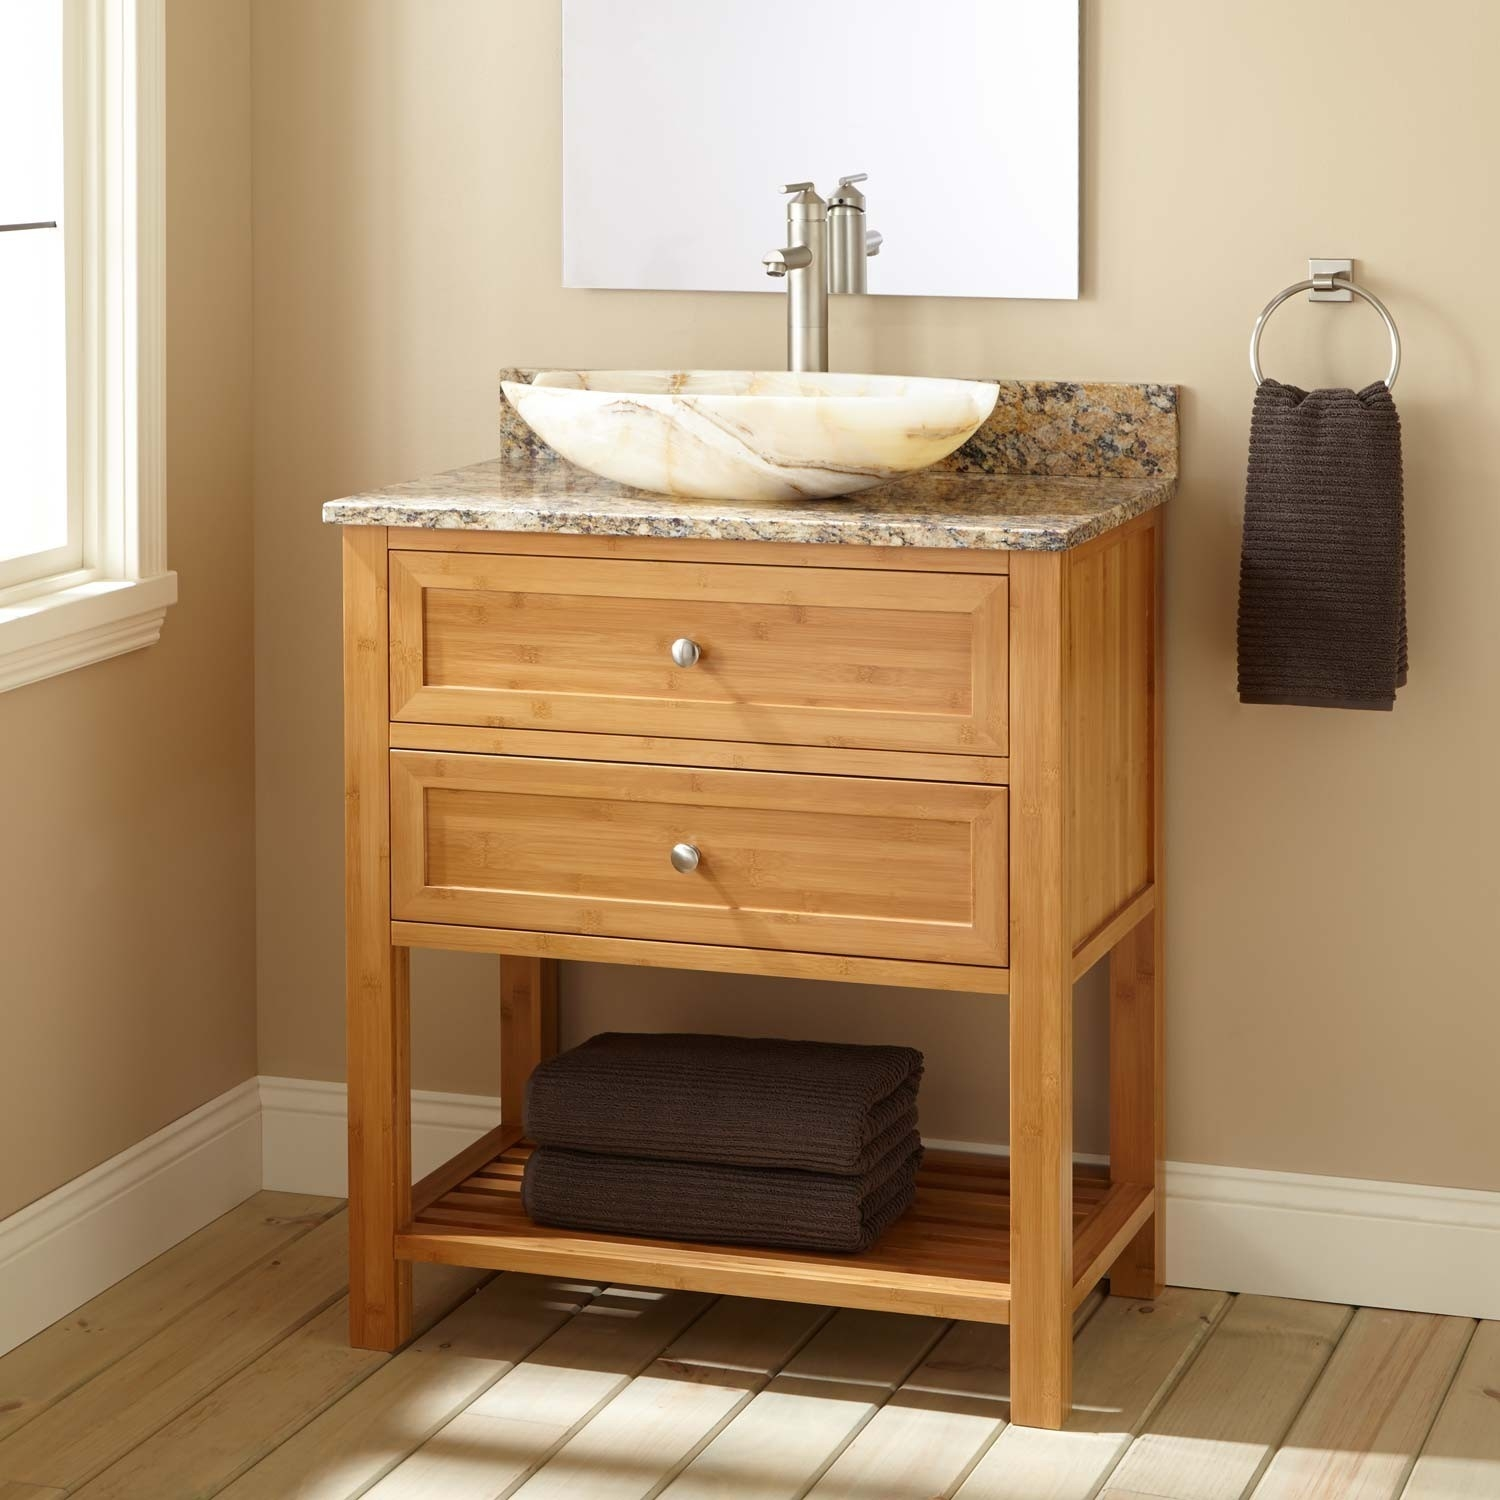 Knotty Pine Bathroom Wall Cabinet